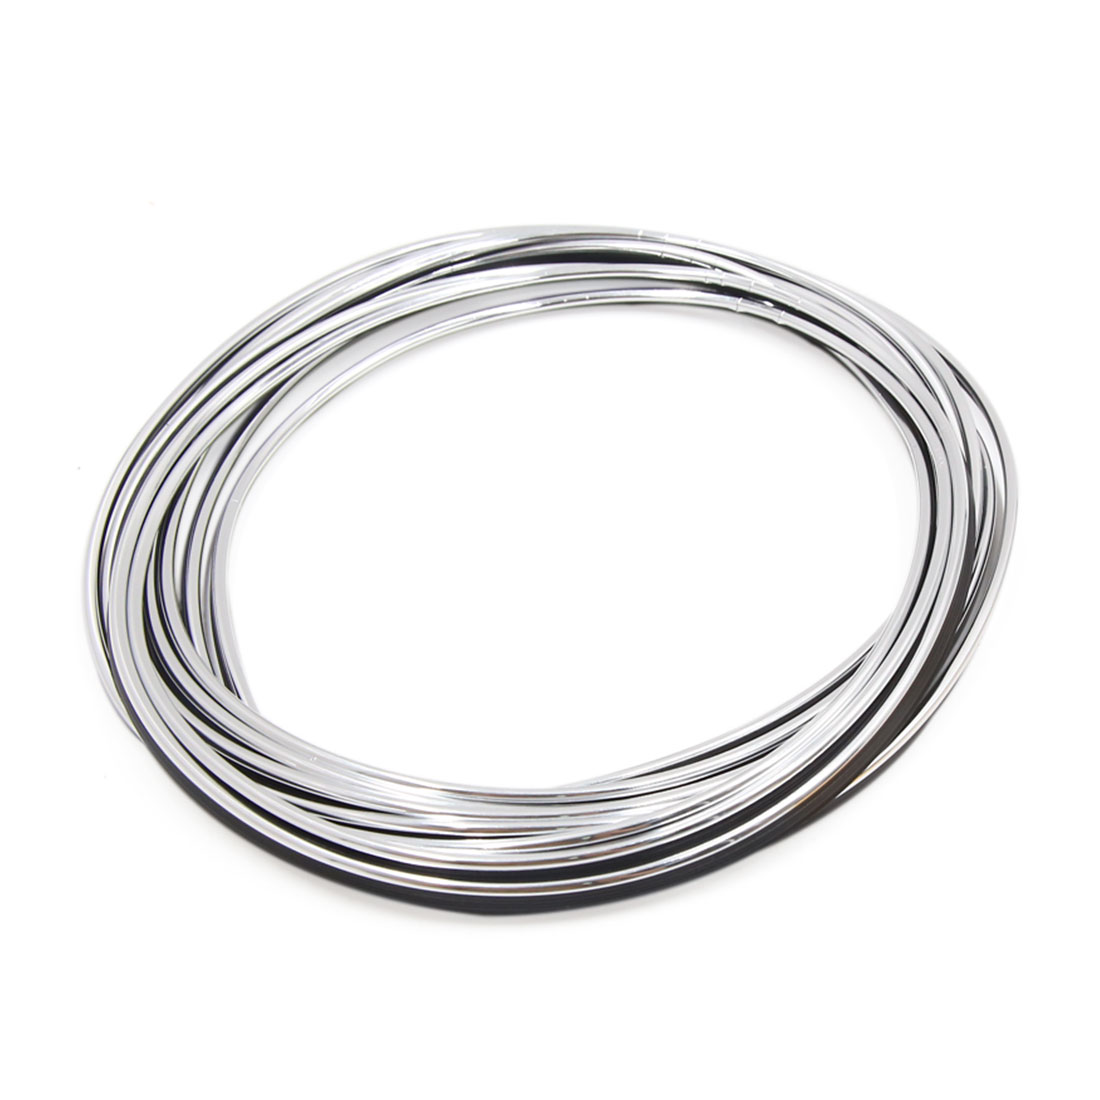 5M Silver Tone Flexible Automotive Car Decorative Moulding Trim Strip Line